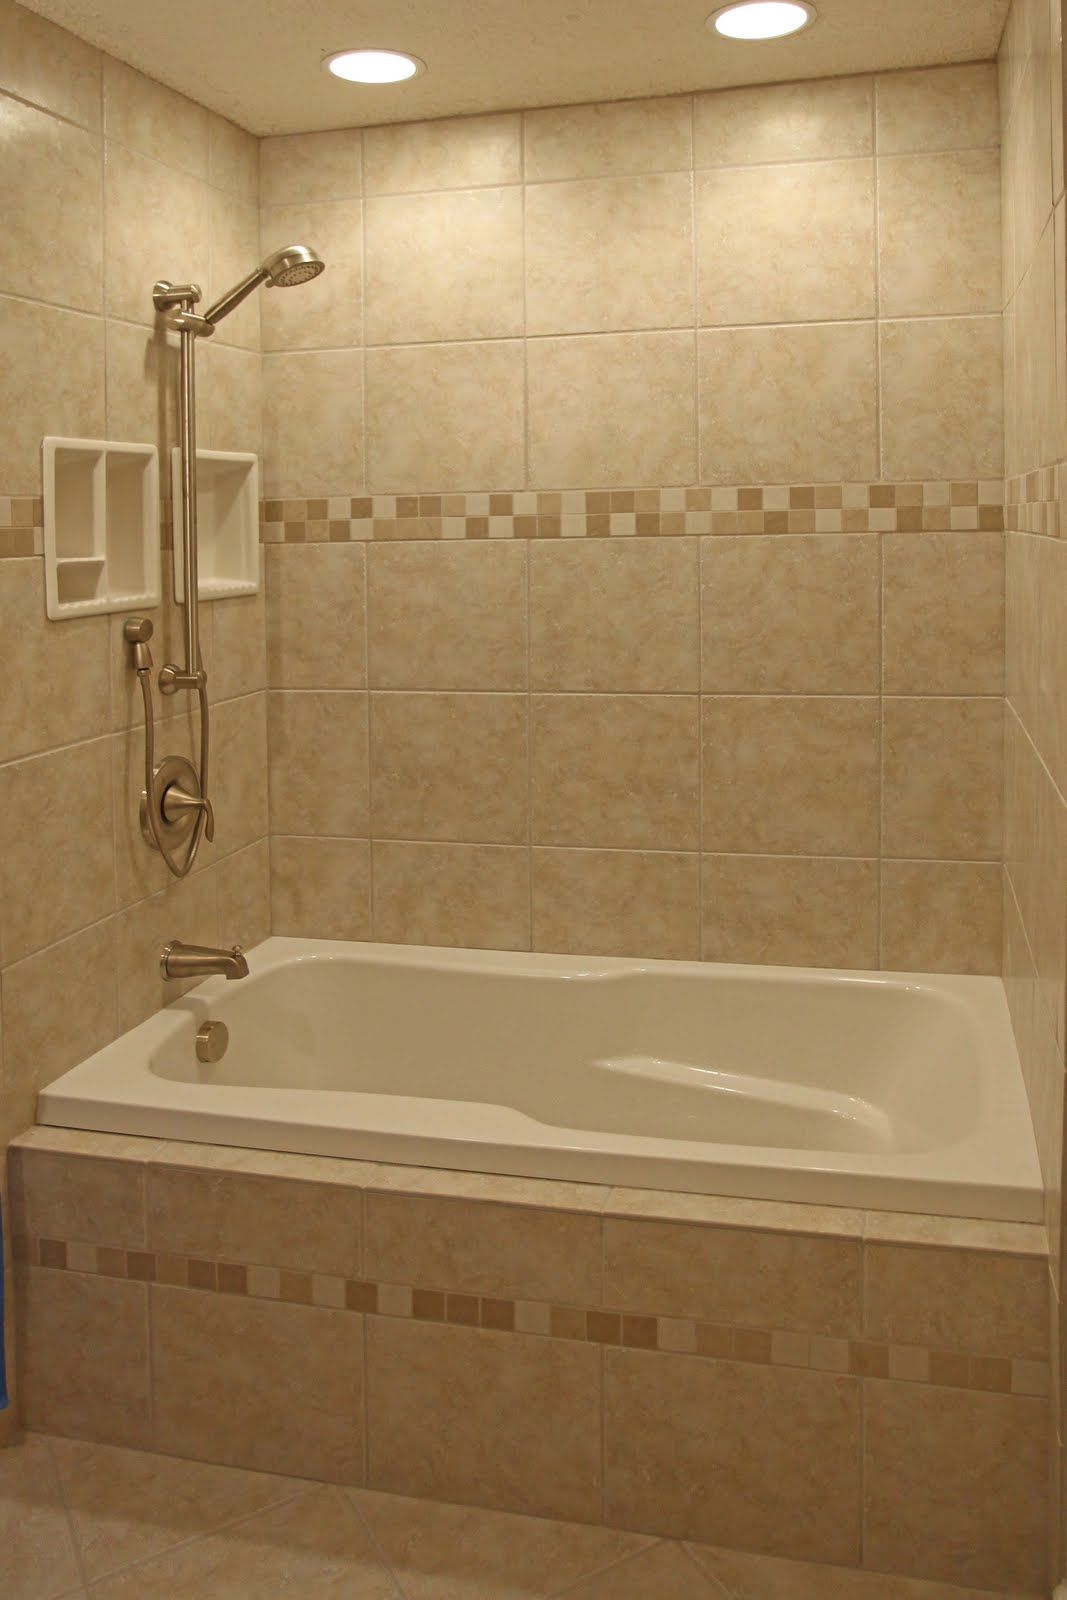 shower and bath remodel | Bathroom Shower Design Ideas ...